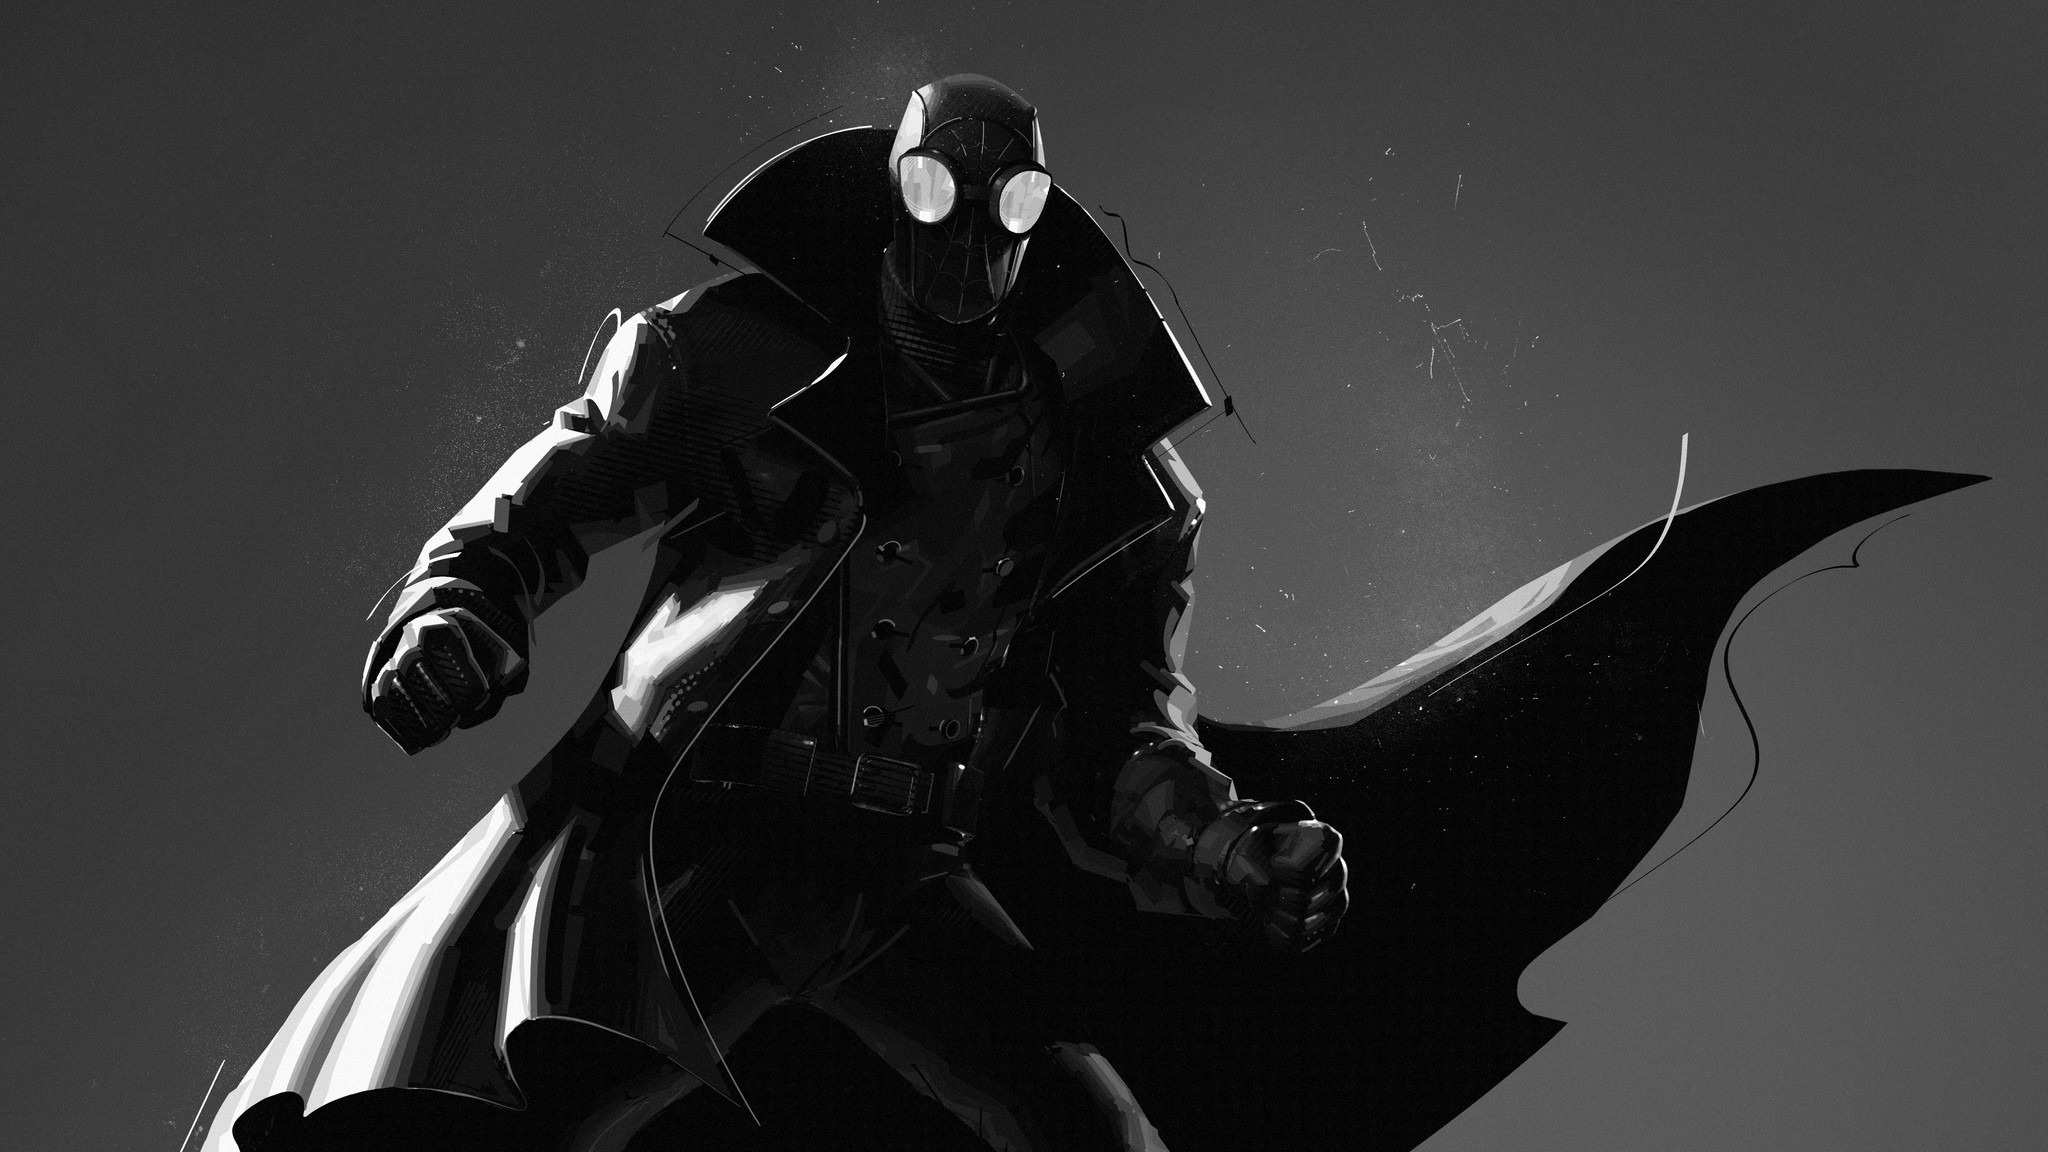 2048x1152 Spider Man Noir 5k 2048x1152 Resolution Hd 4k